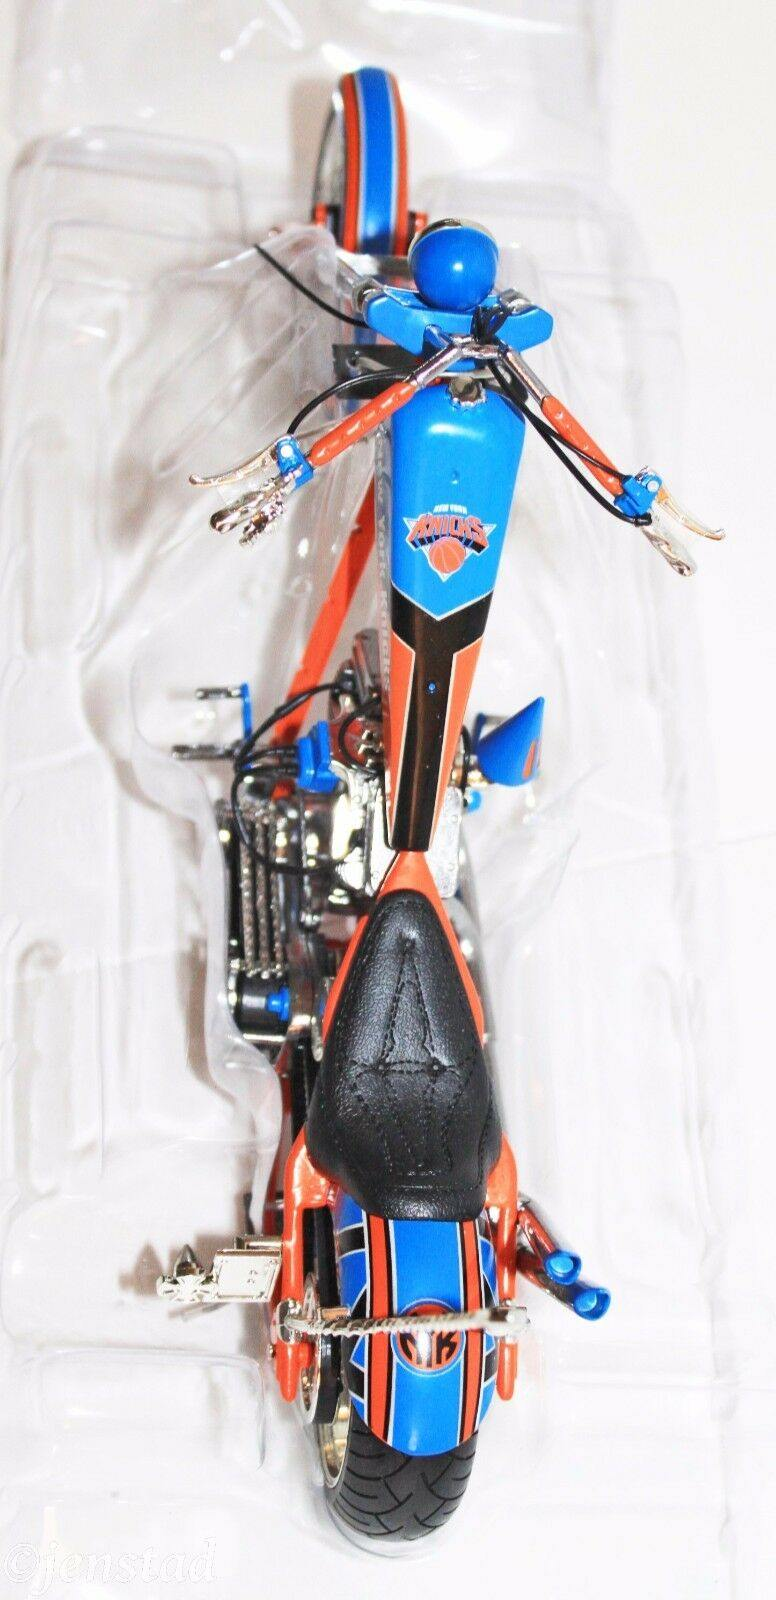 NEW YORK KNICKS BASKETBALL 1:10 DIECAST OCC CHOPPER MOTORCYCLE ERTL NBA NEW 2005